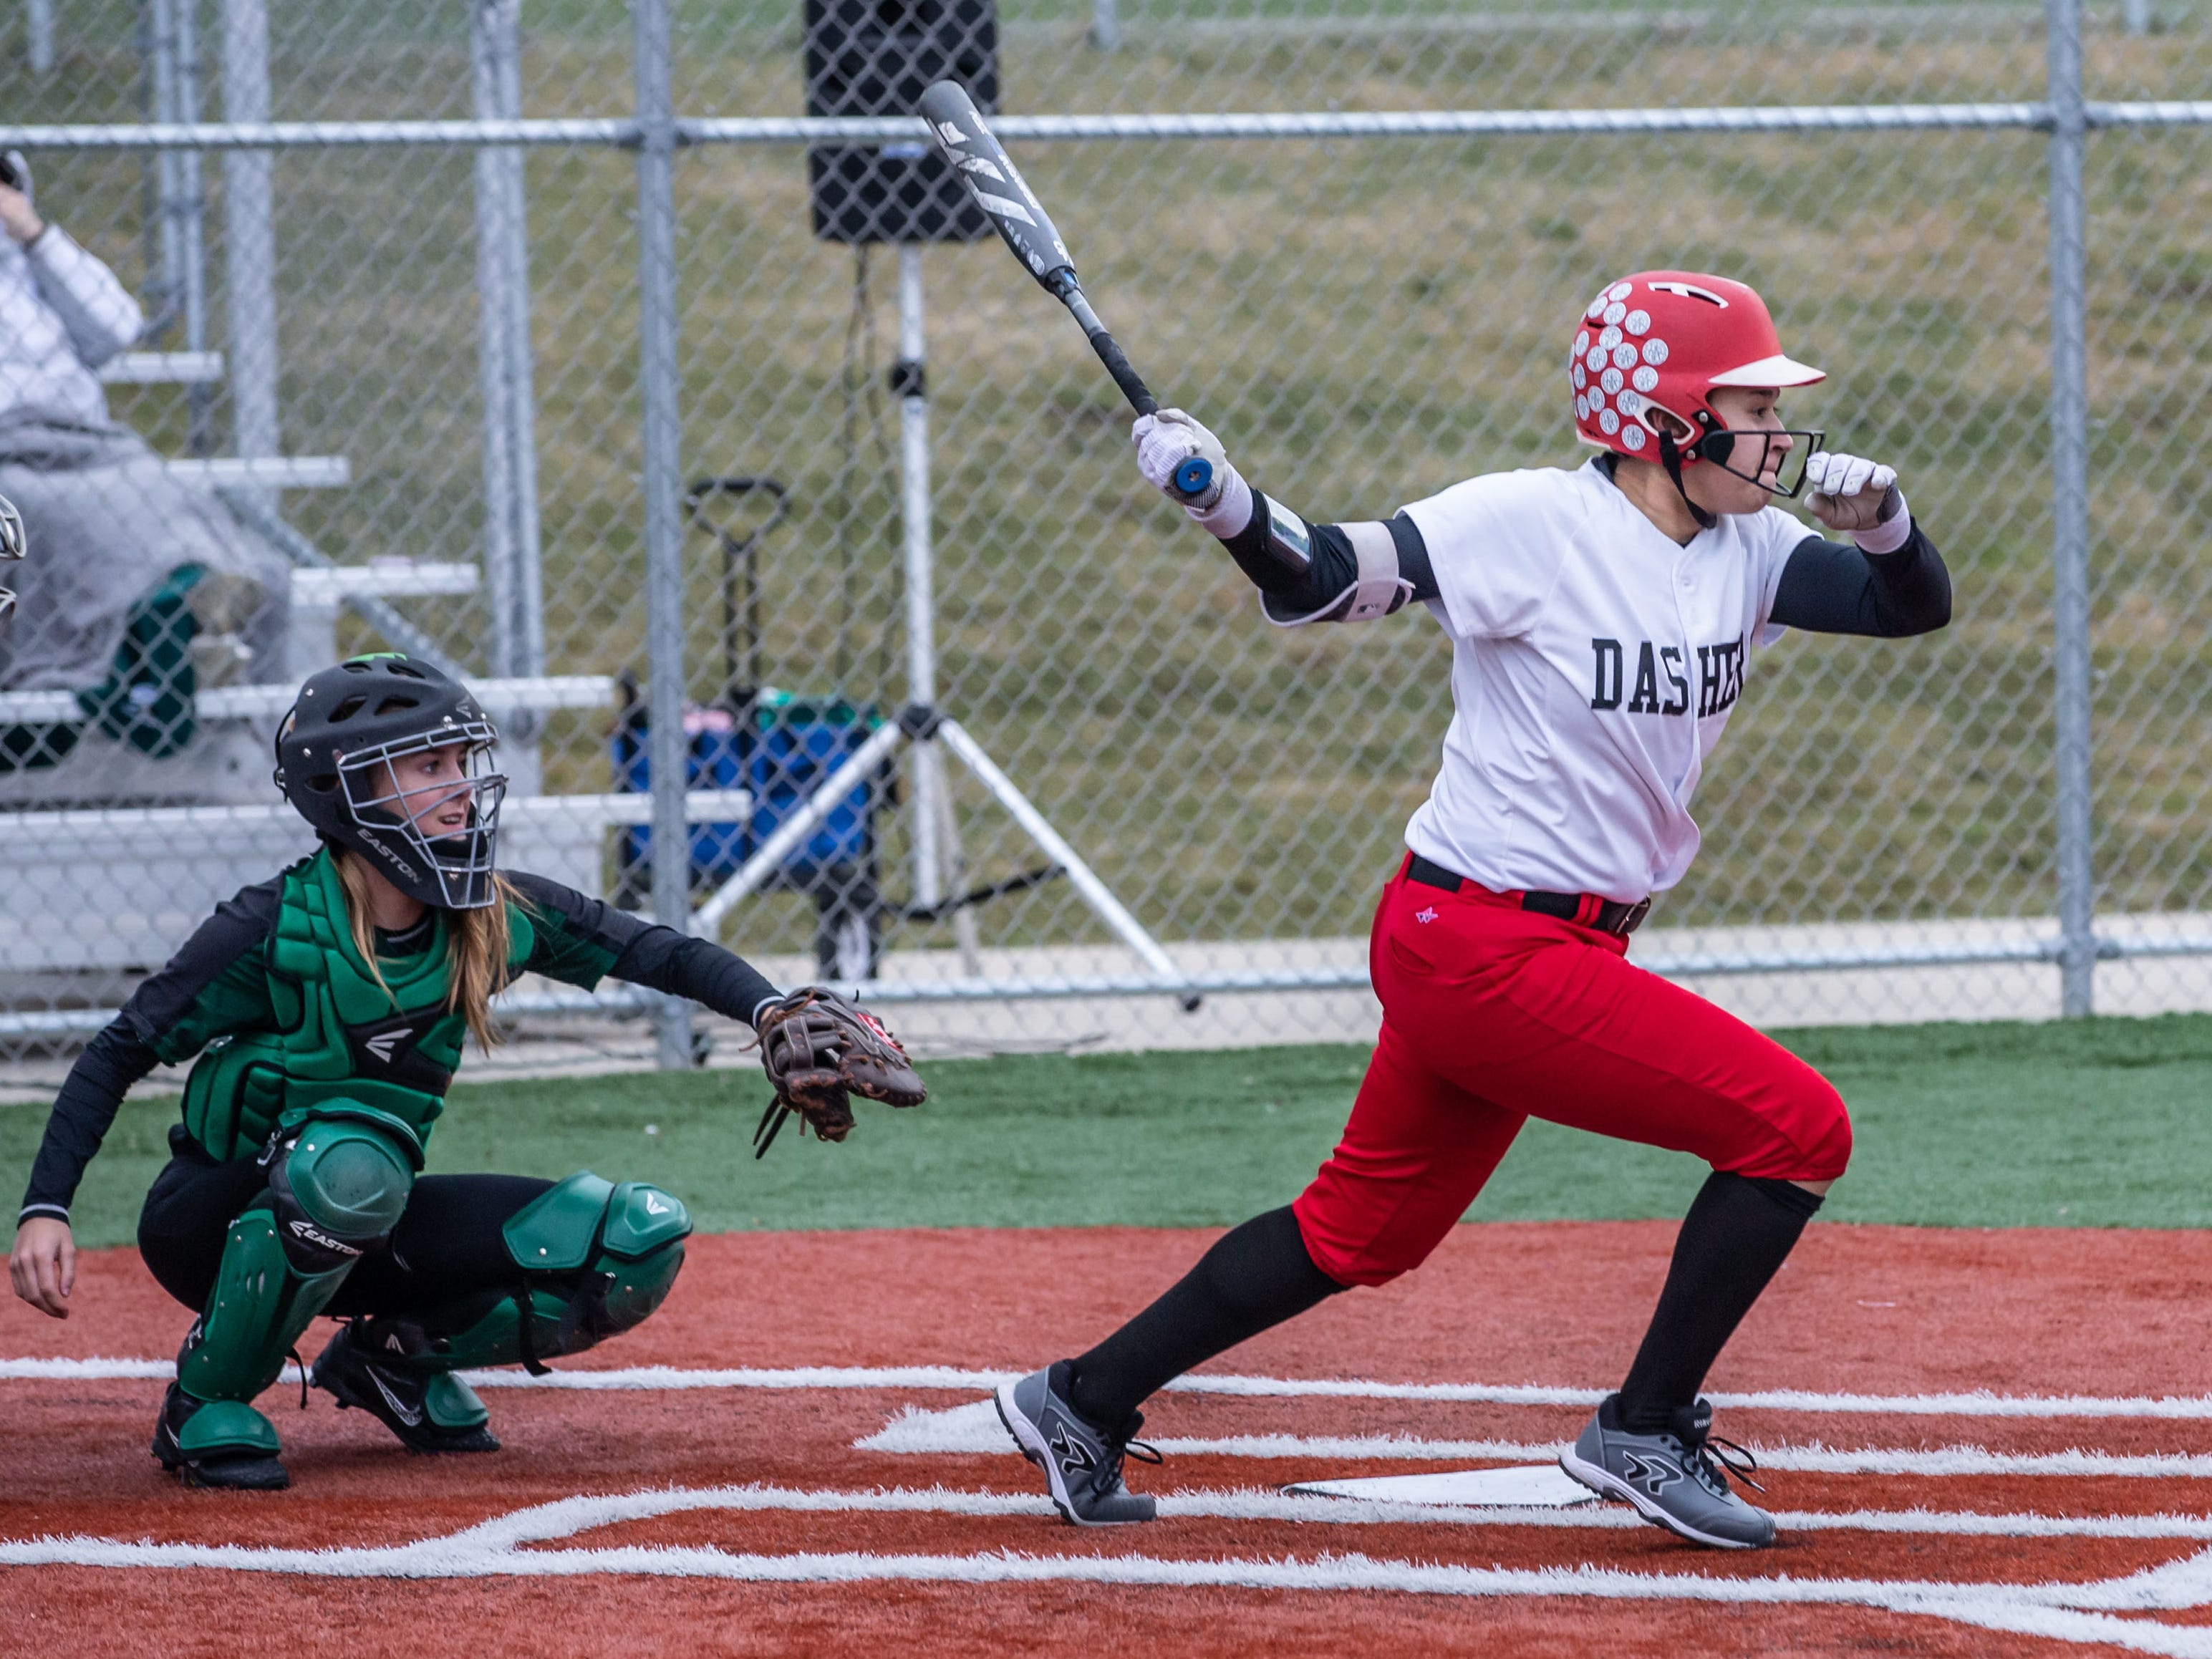 DSHA's Lauren Berridge drives one to center field during the game at Wauwatosa West on Wednesday, April 17, 2019.